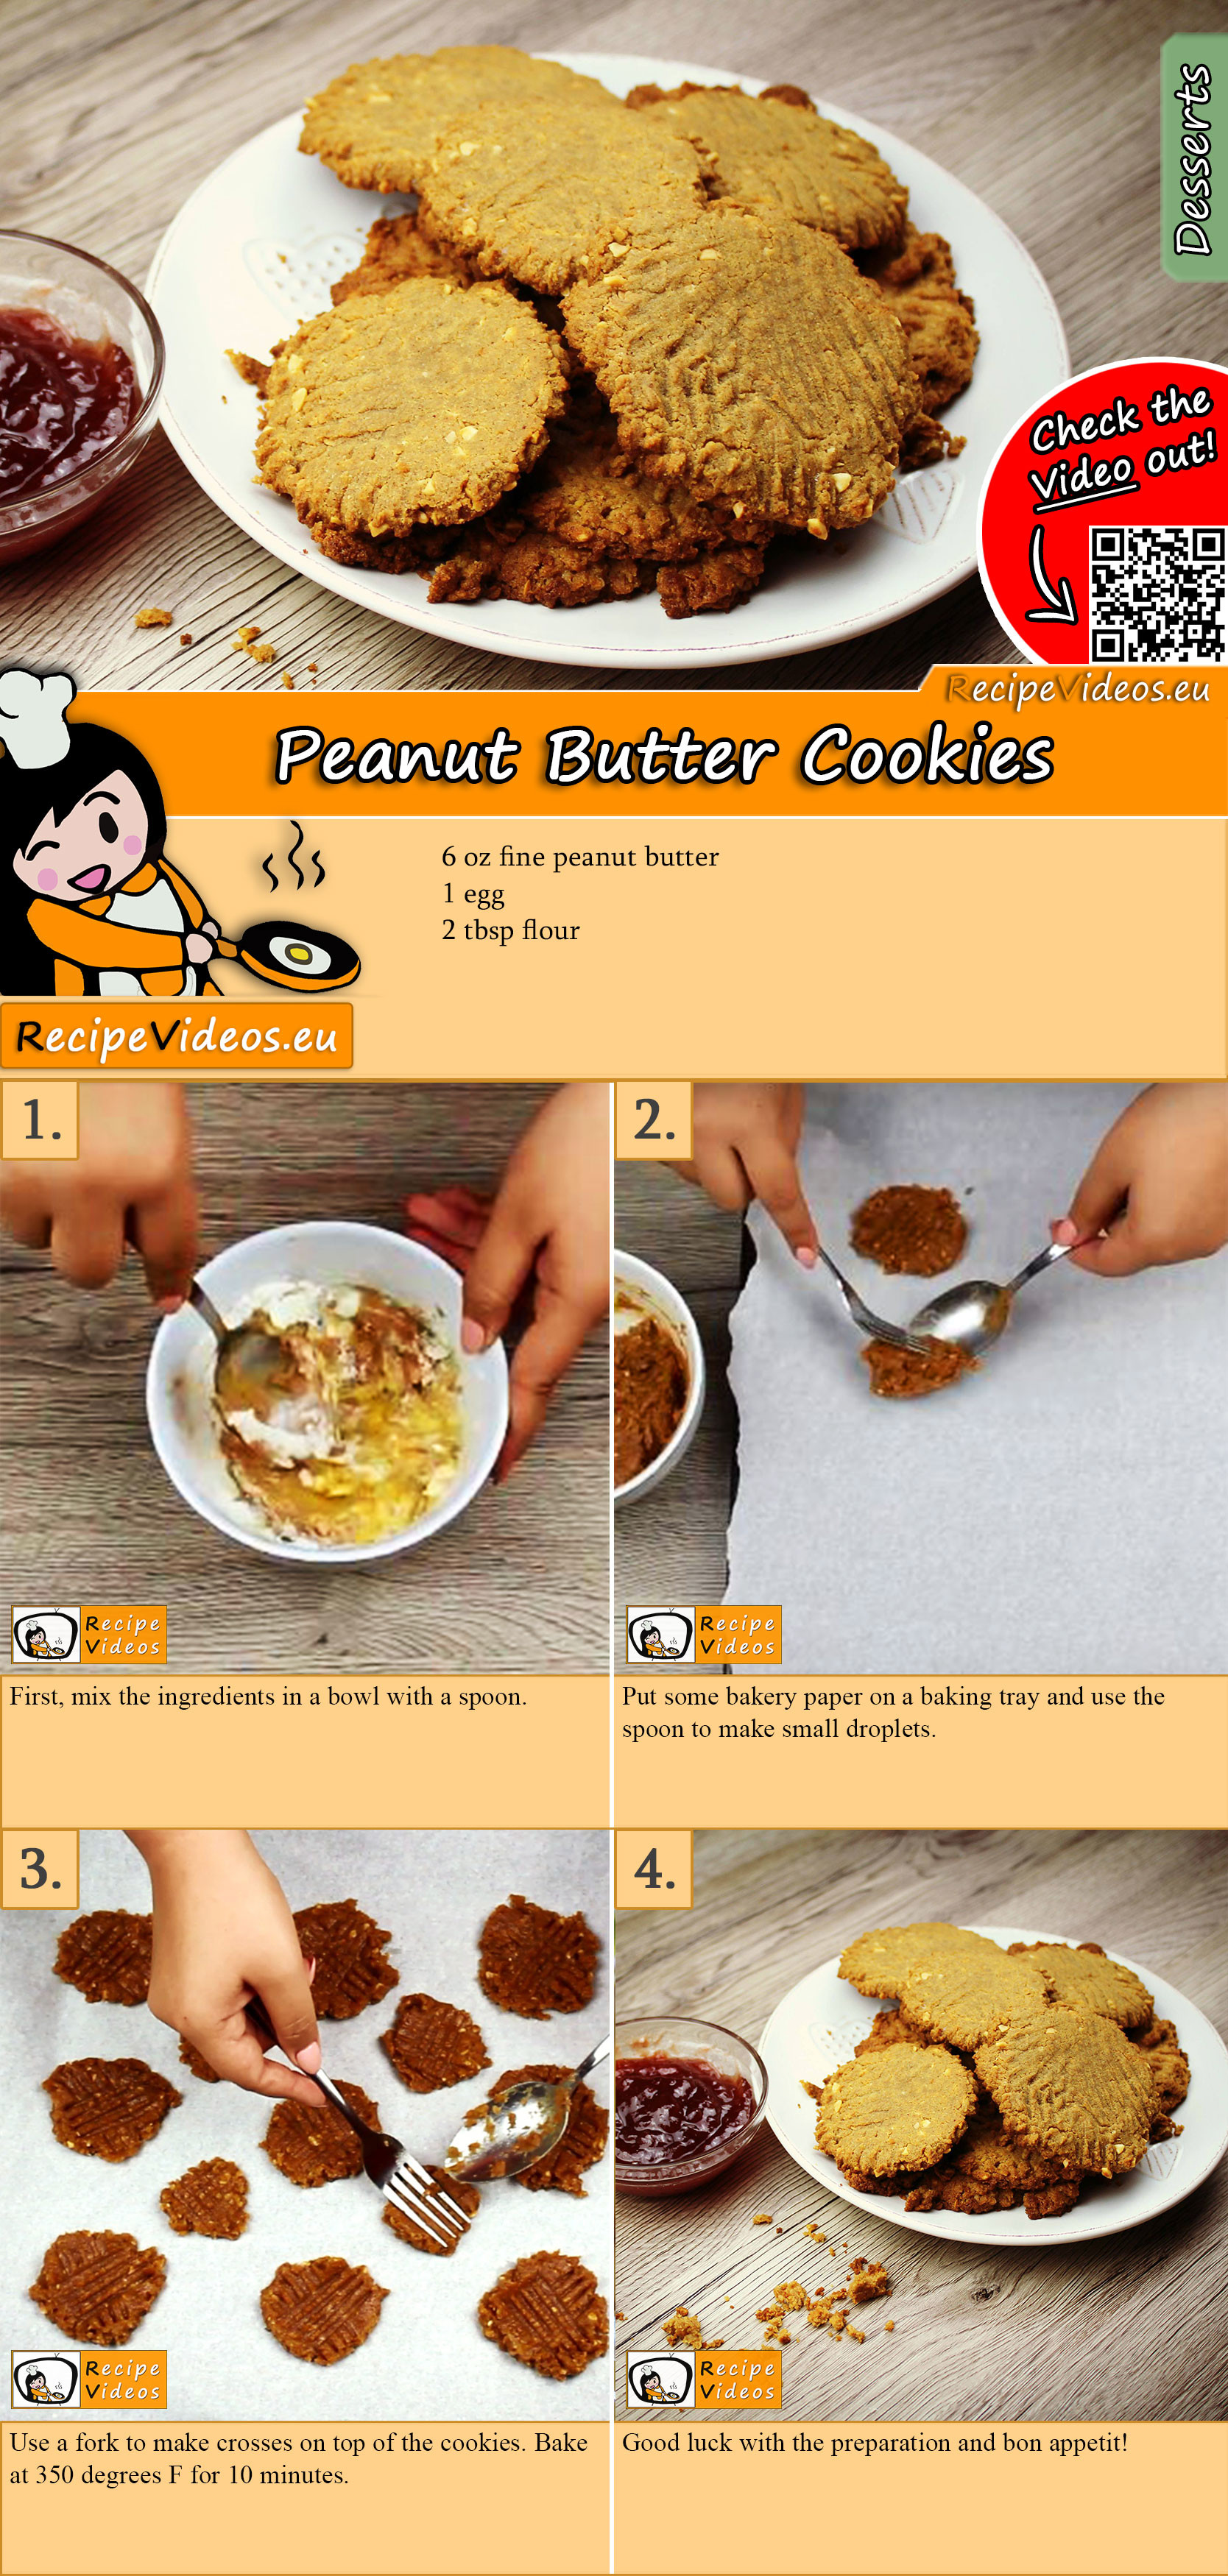 Peanut Butter Cookies recipe with video